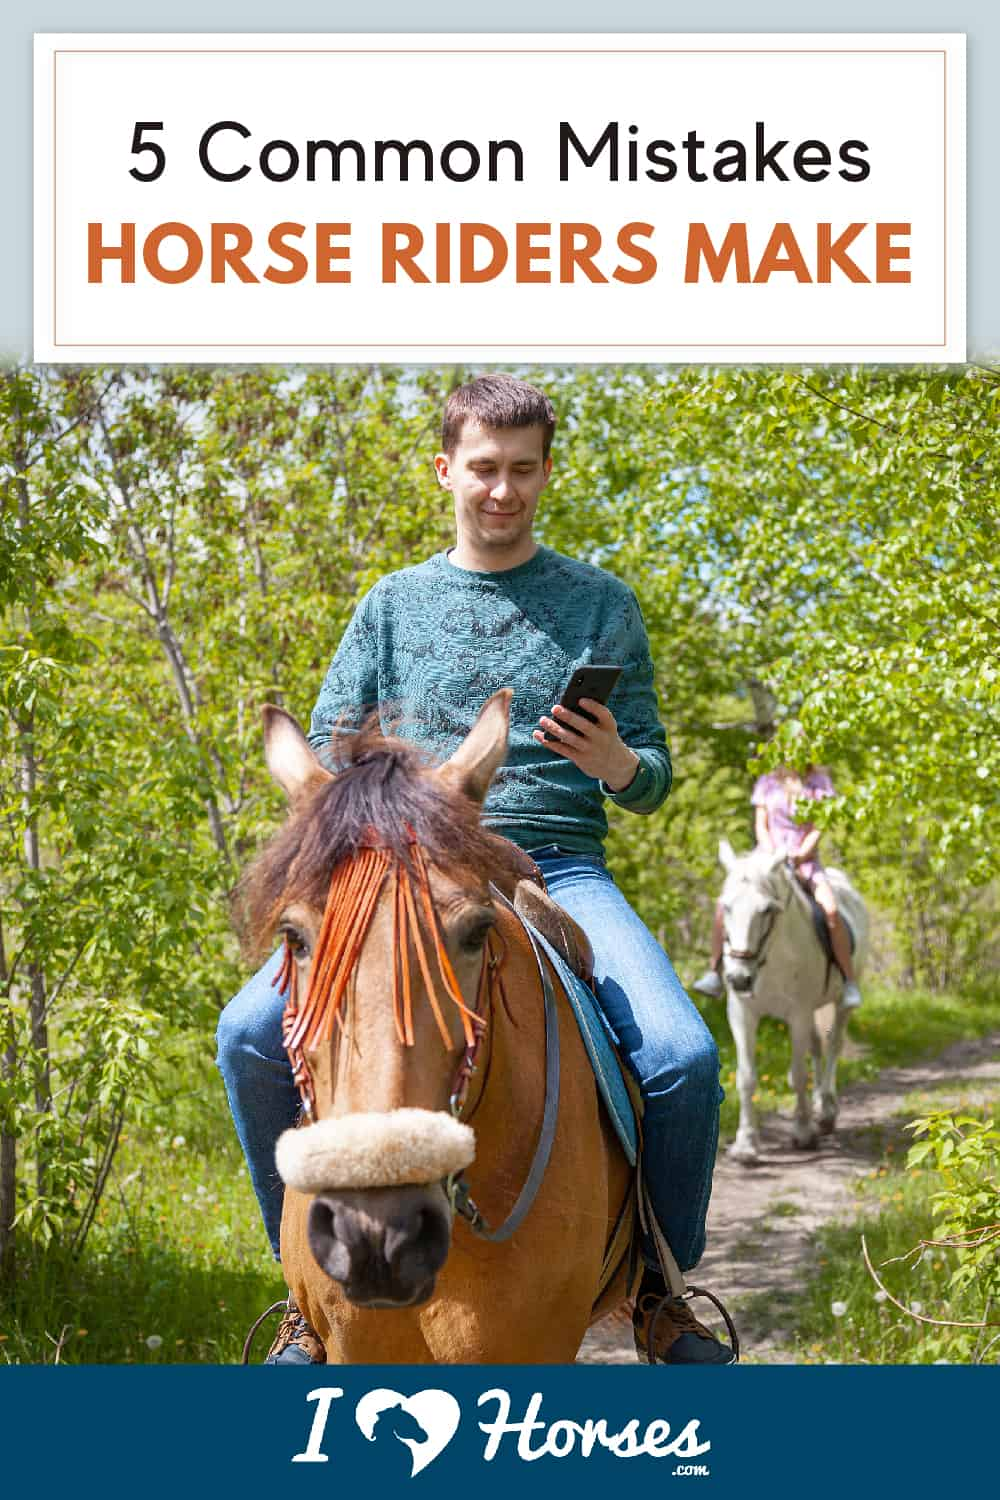 5 Common Mistakes Horse Riders Make-01-01